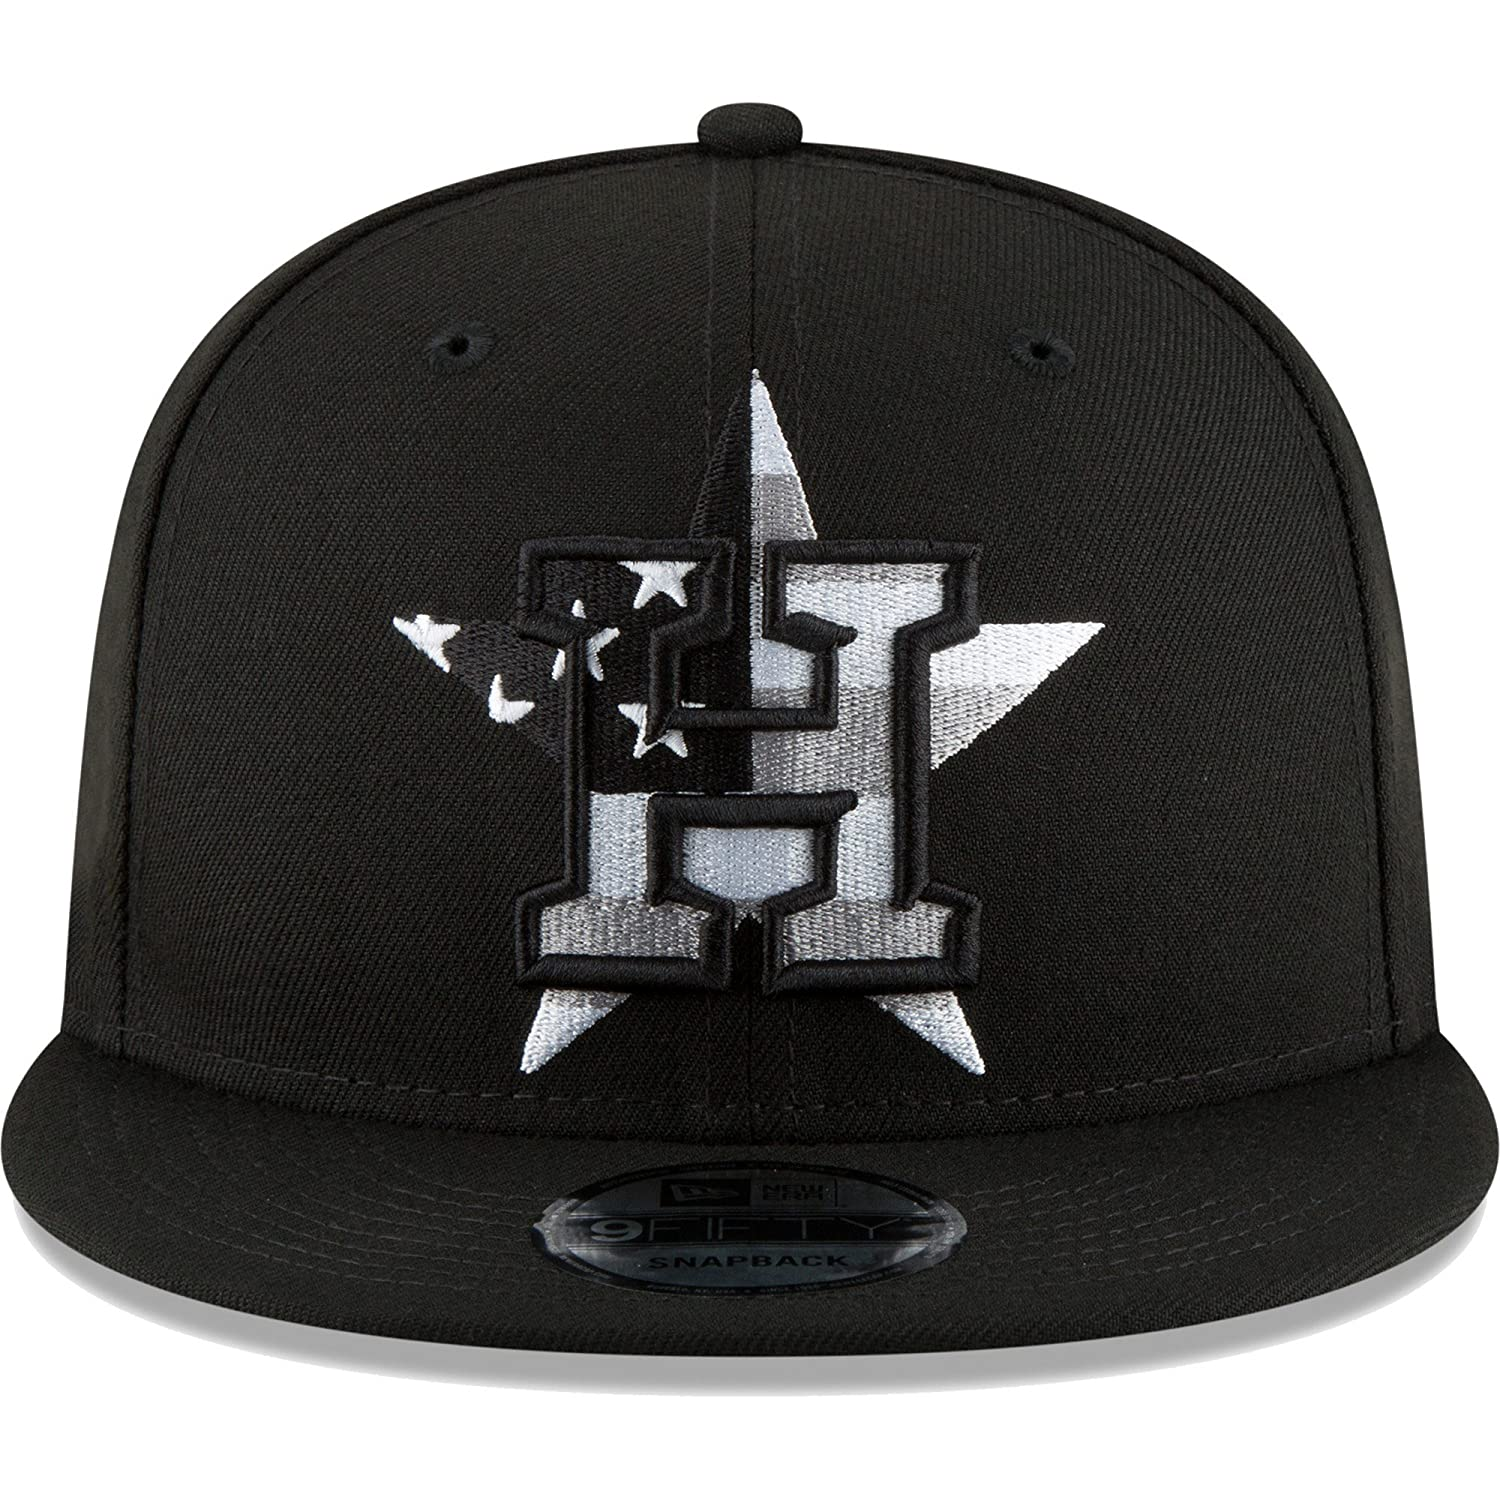 quality design 8a3fe a6eab Amazon.com   Houston Astros New Era Flag Fill 9FIFTY Adjustable Hat Black    Sports   Outdoors